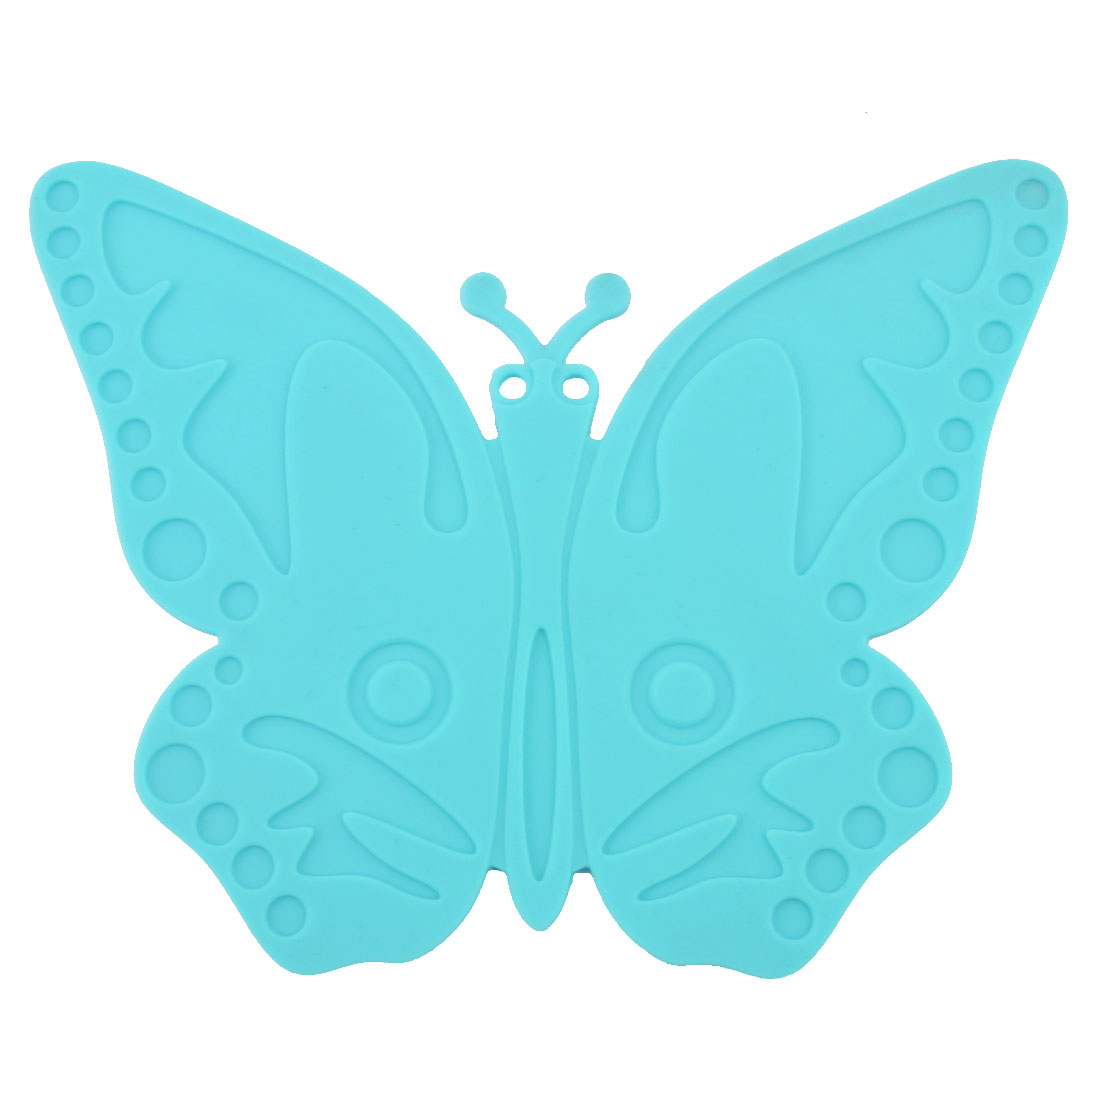 Silicone Butterfly Design Heat Resistant Mat Cup Coaster Cushion Placemat Cyan